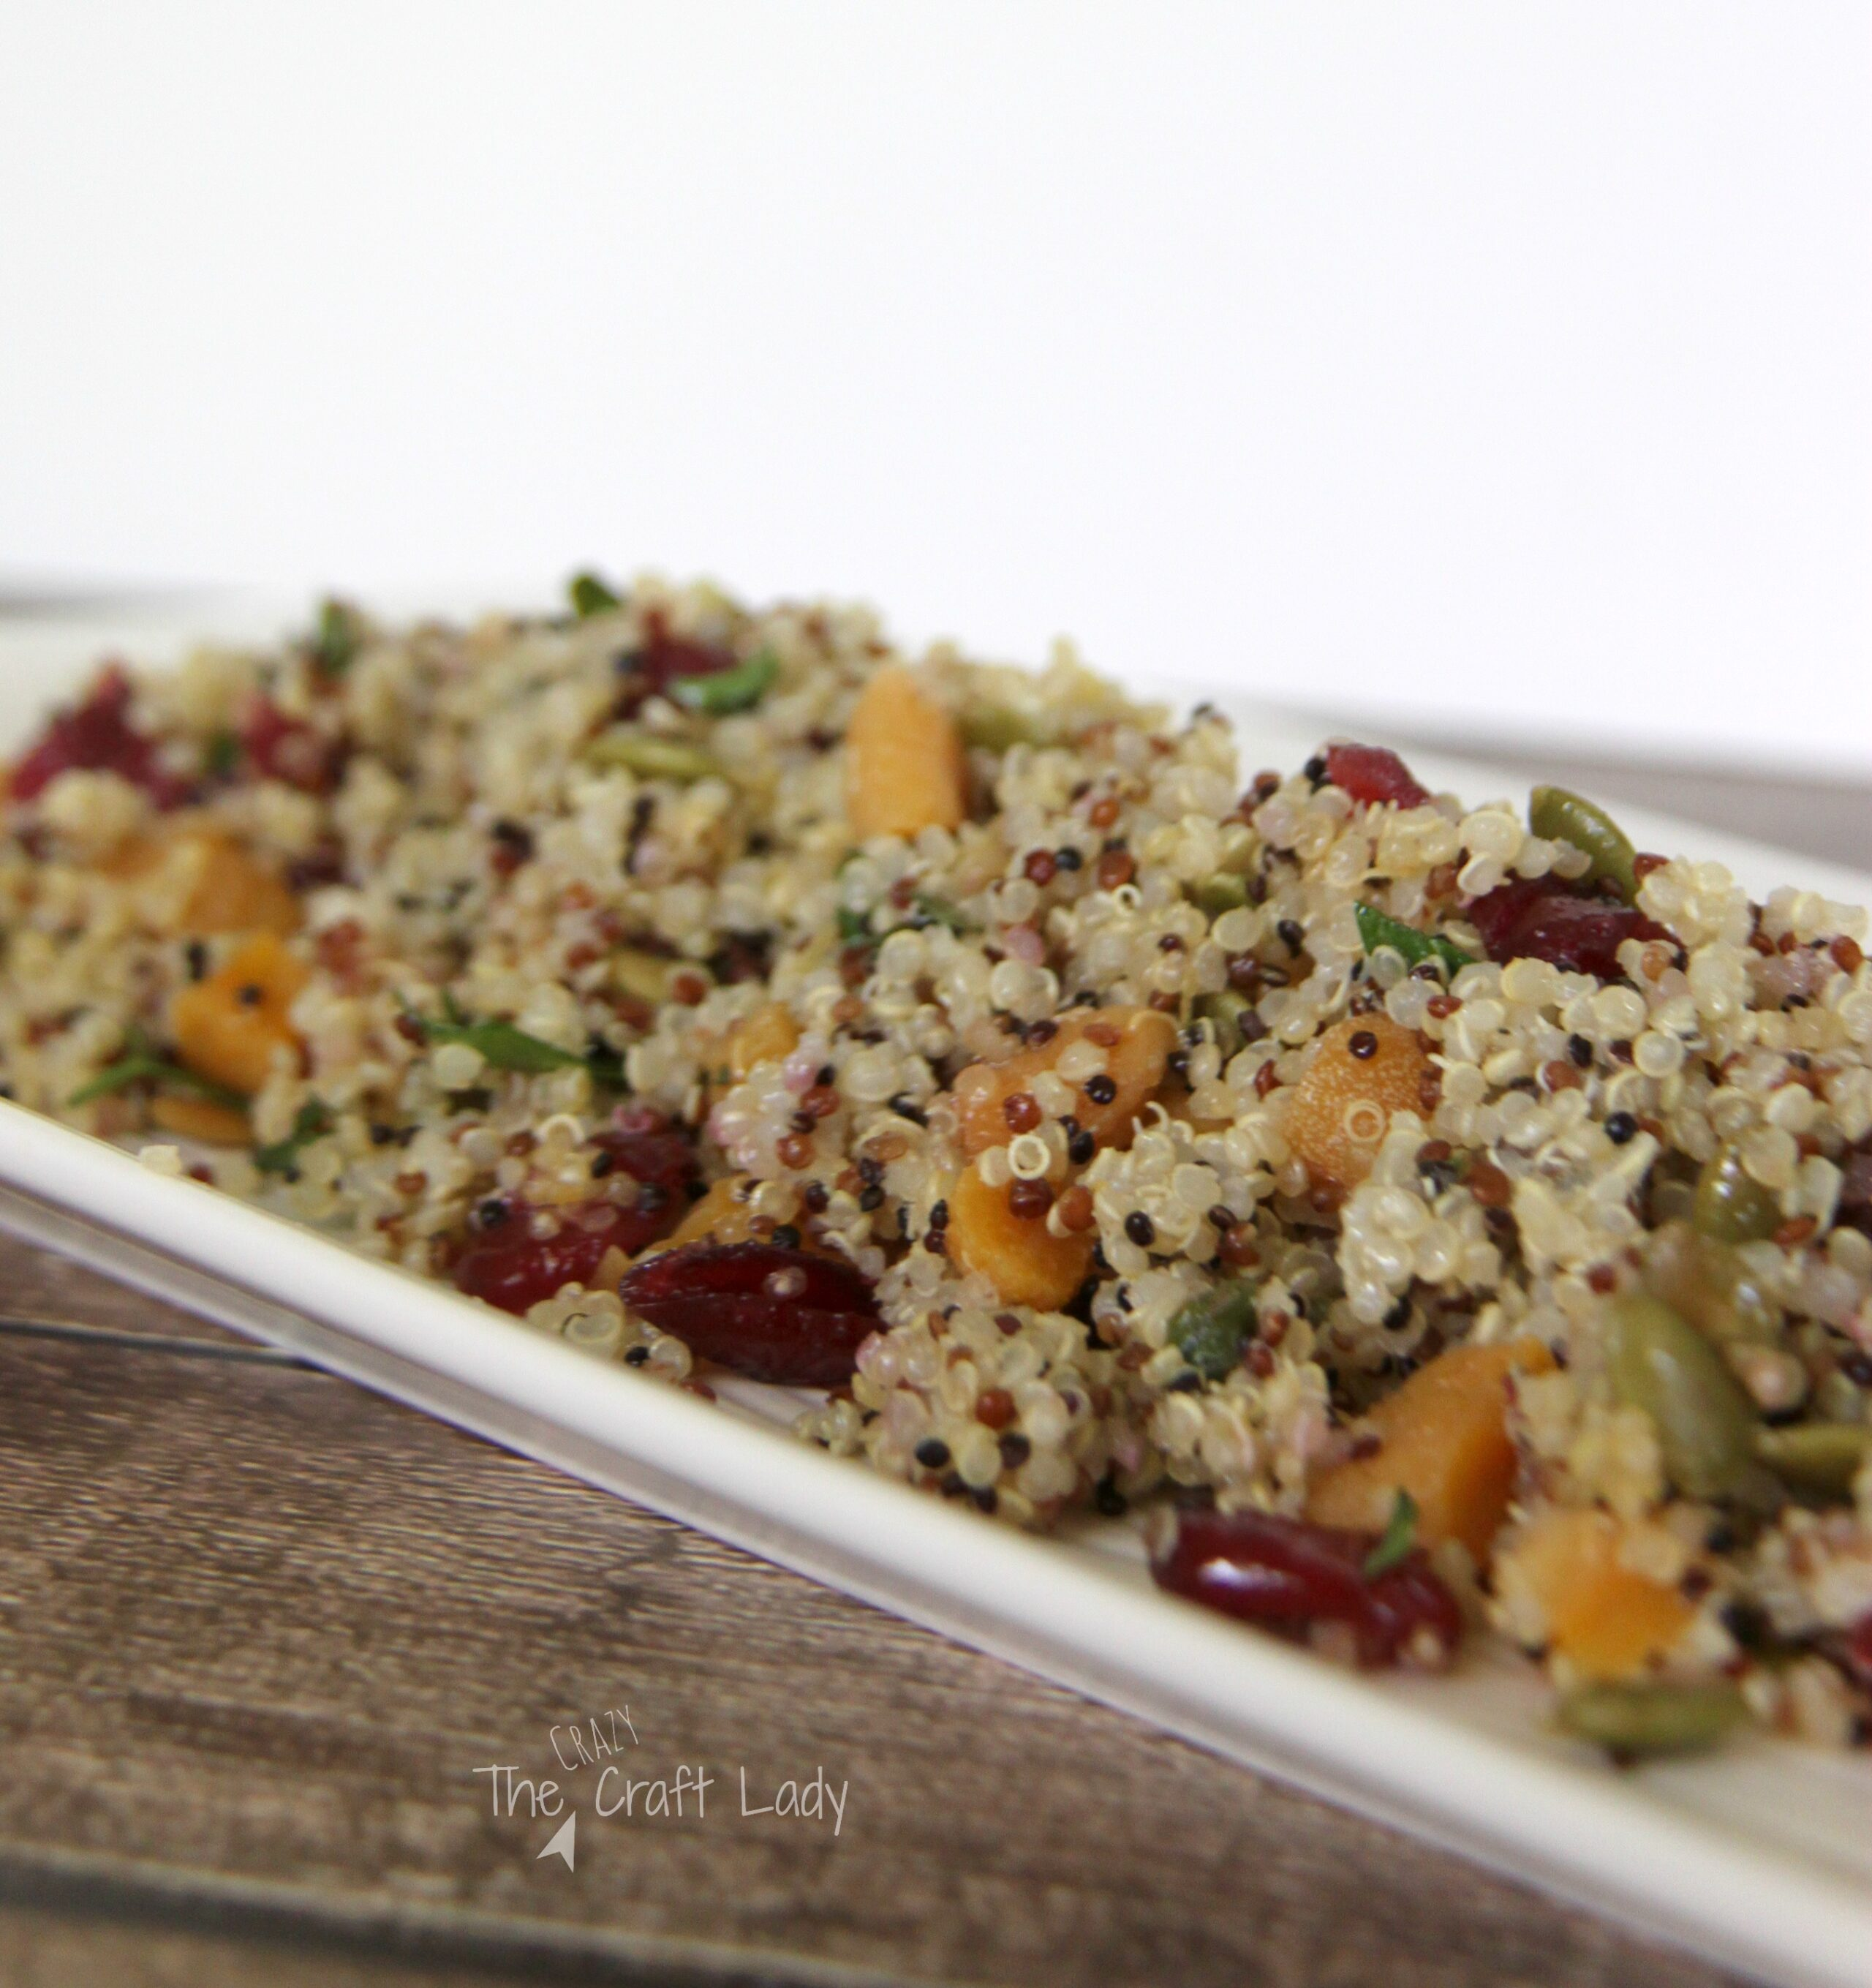 Quinoa Salad with Cranberries, Apricots, and Pumpkin Seeds. This is a perfect summer salad - it's cool and refreshing as well as buffet and potluck friendly.